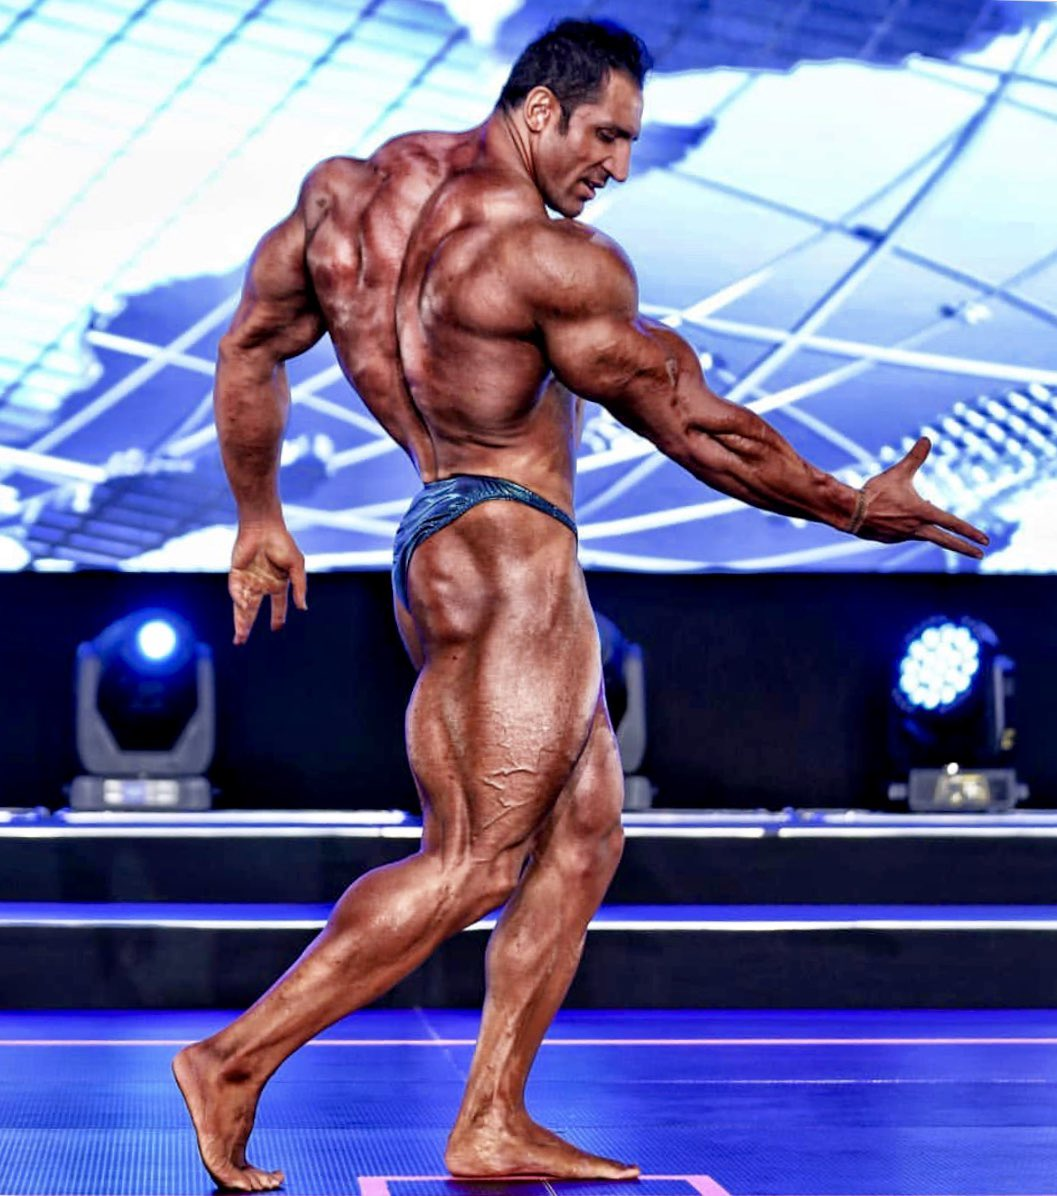 For serious muscle worshippers :MA Team is working with Competitive Bodybuilders who need serious sponsorship by private sponsors. They offer custom videos and progress photos.  Contact me if you are serious about becoming their official private sponsors.